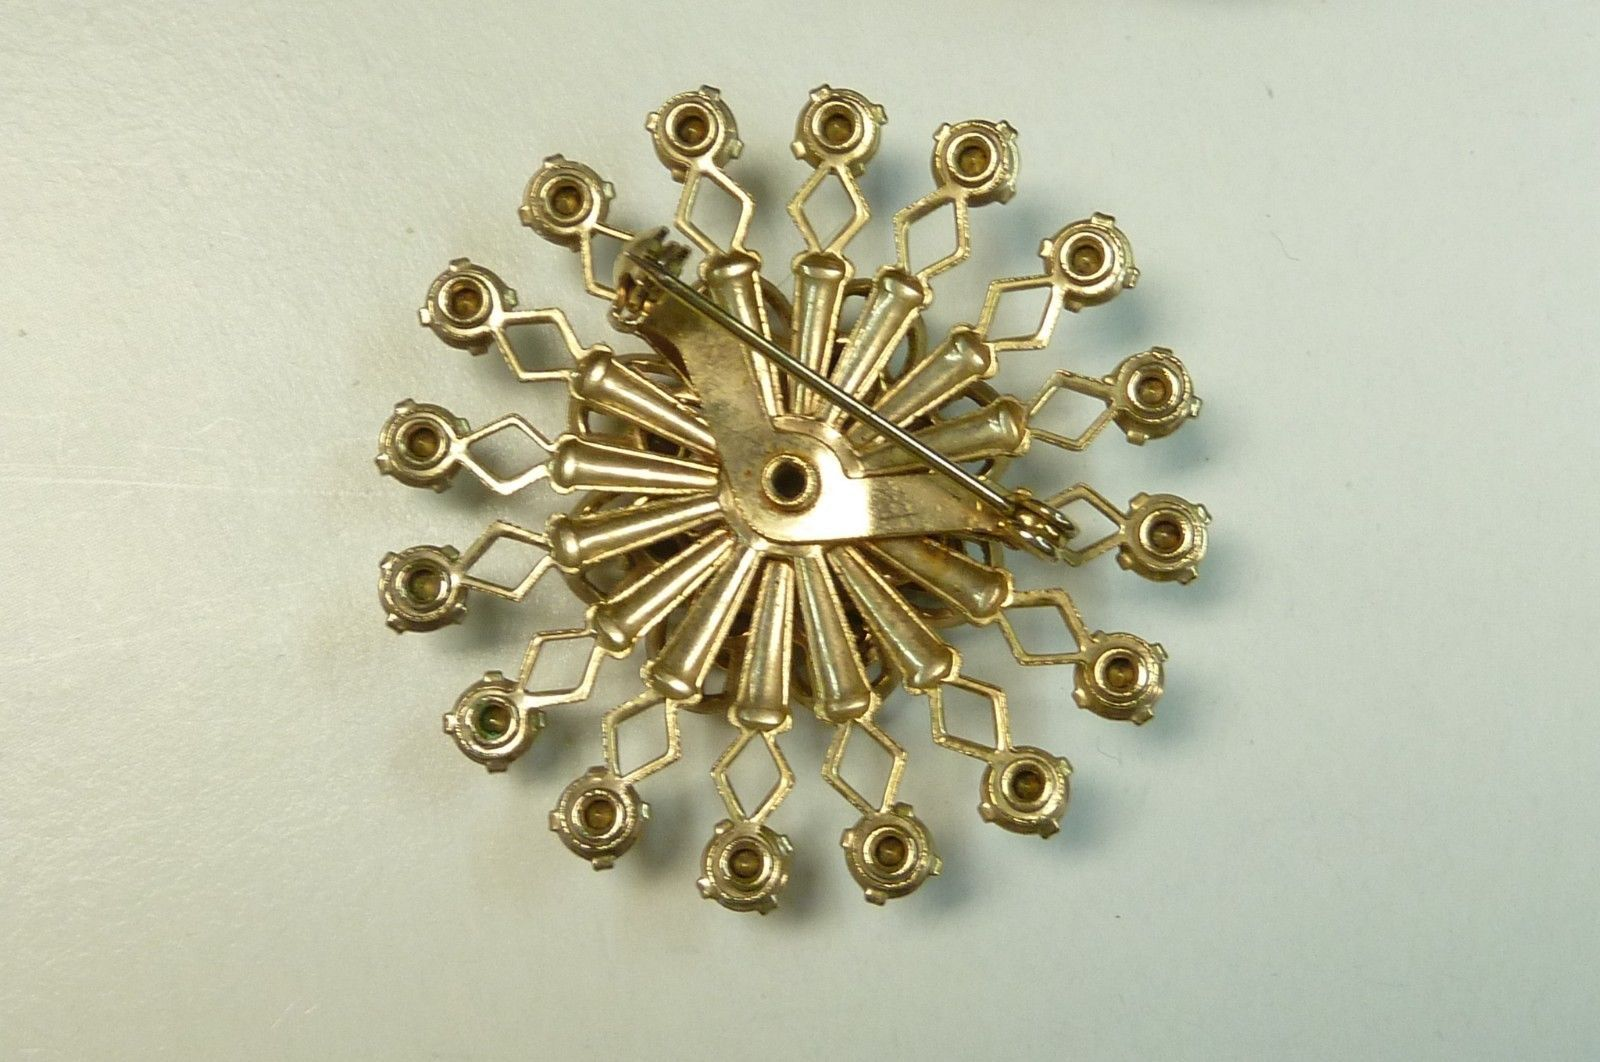 Vintage Blue Rhinestone Round Gold Plated Costume Fashion Pin Brooch image 2